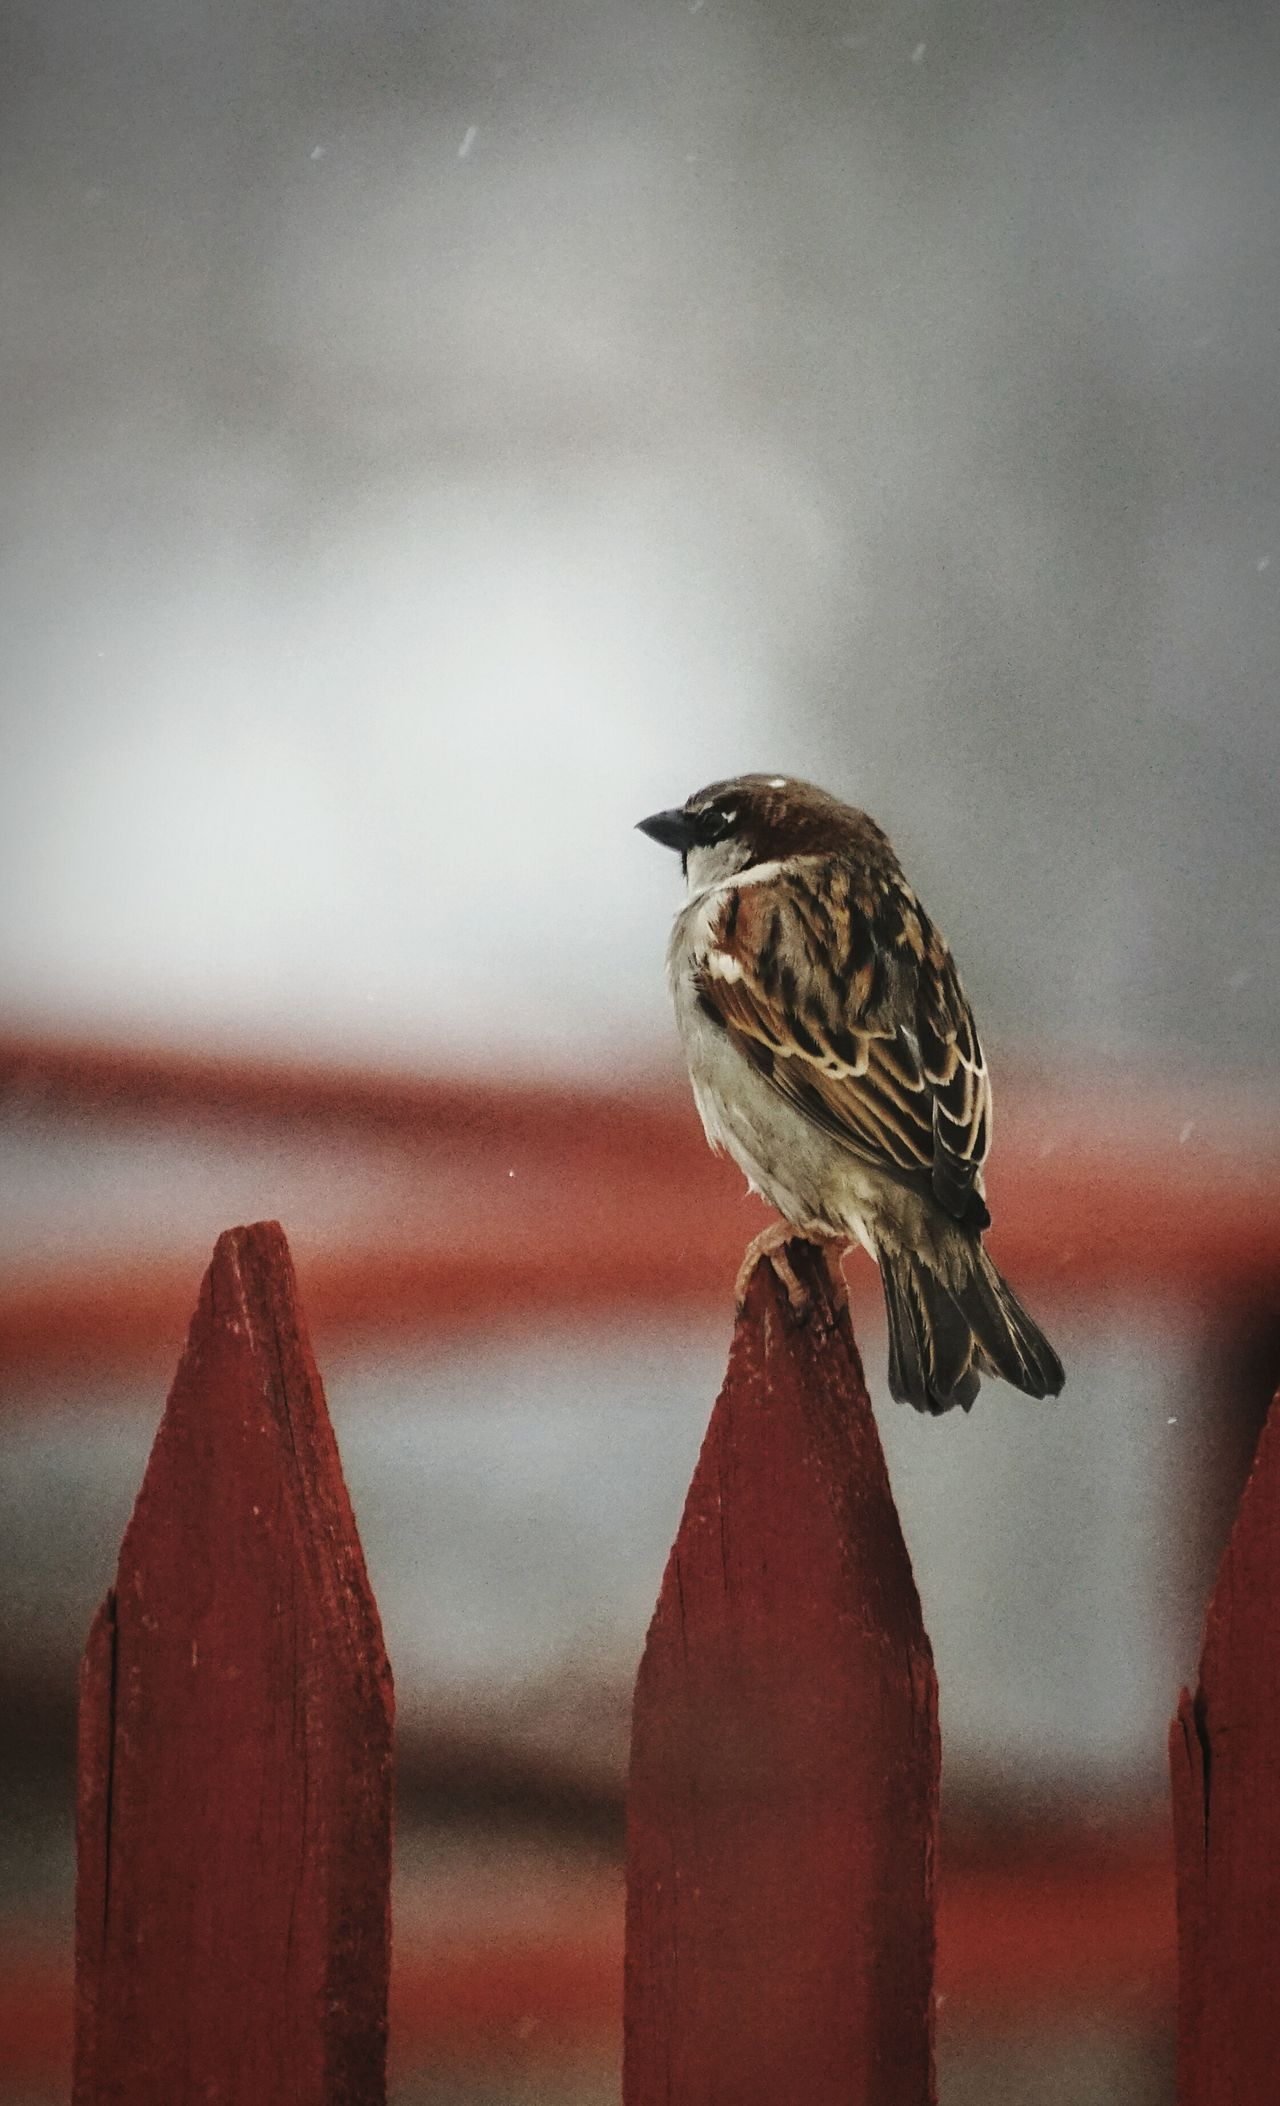 Sweden 2017 Februari Niklas Showcase February 2017 Tantolunden Stockholm House Sparrow Animal Themes Bird Animal Wildlife Animals In The Wild One Animal Perching Focus On Foreground Songbird  Close-up Outdoors Living Organism Sparrow Beauty In Nature